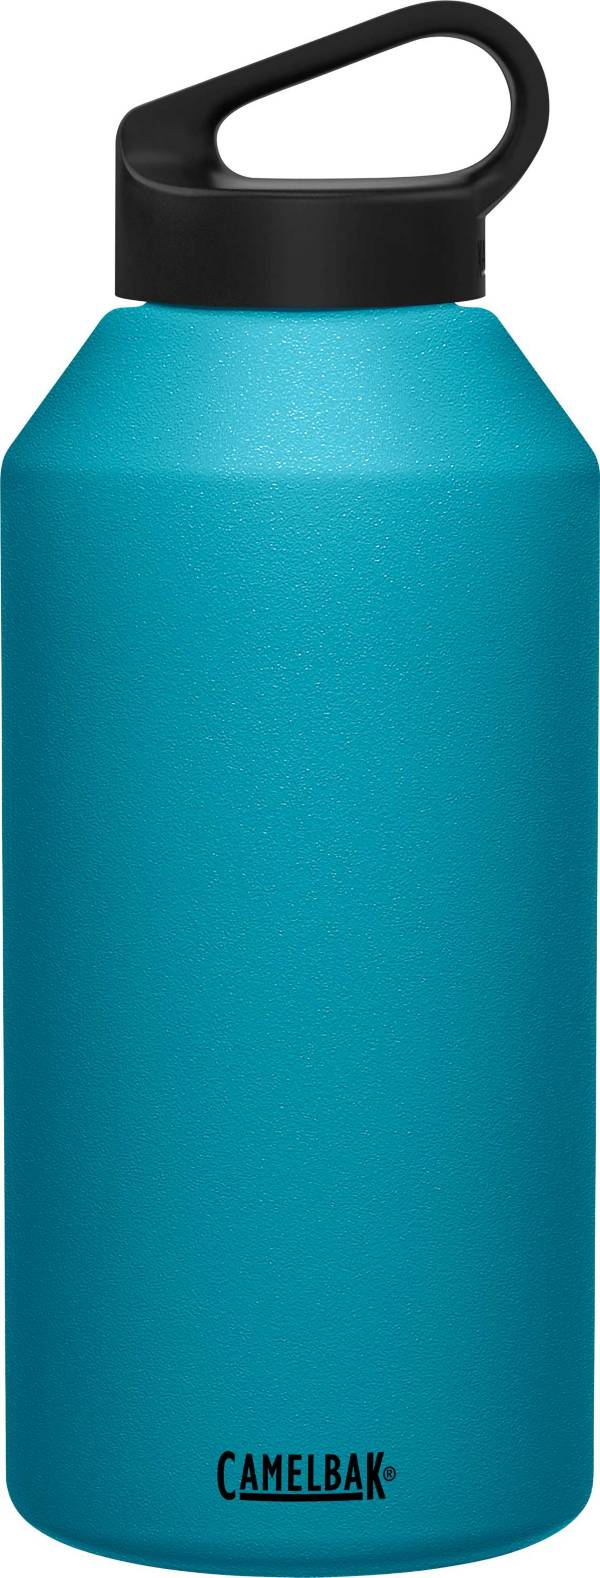 CamelBak Carry Cap Stainless Steel 64 oz. Insulated Bottle product image